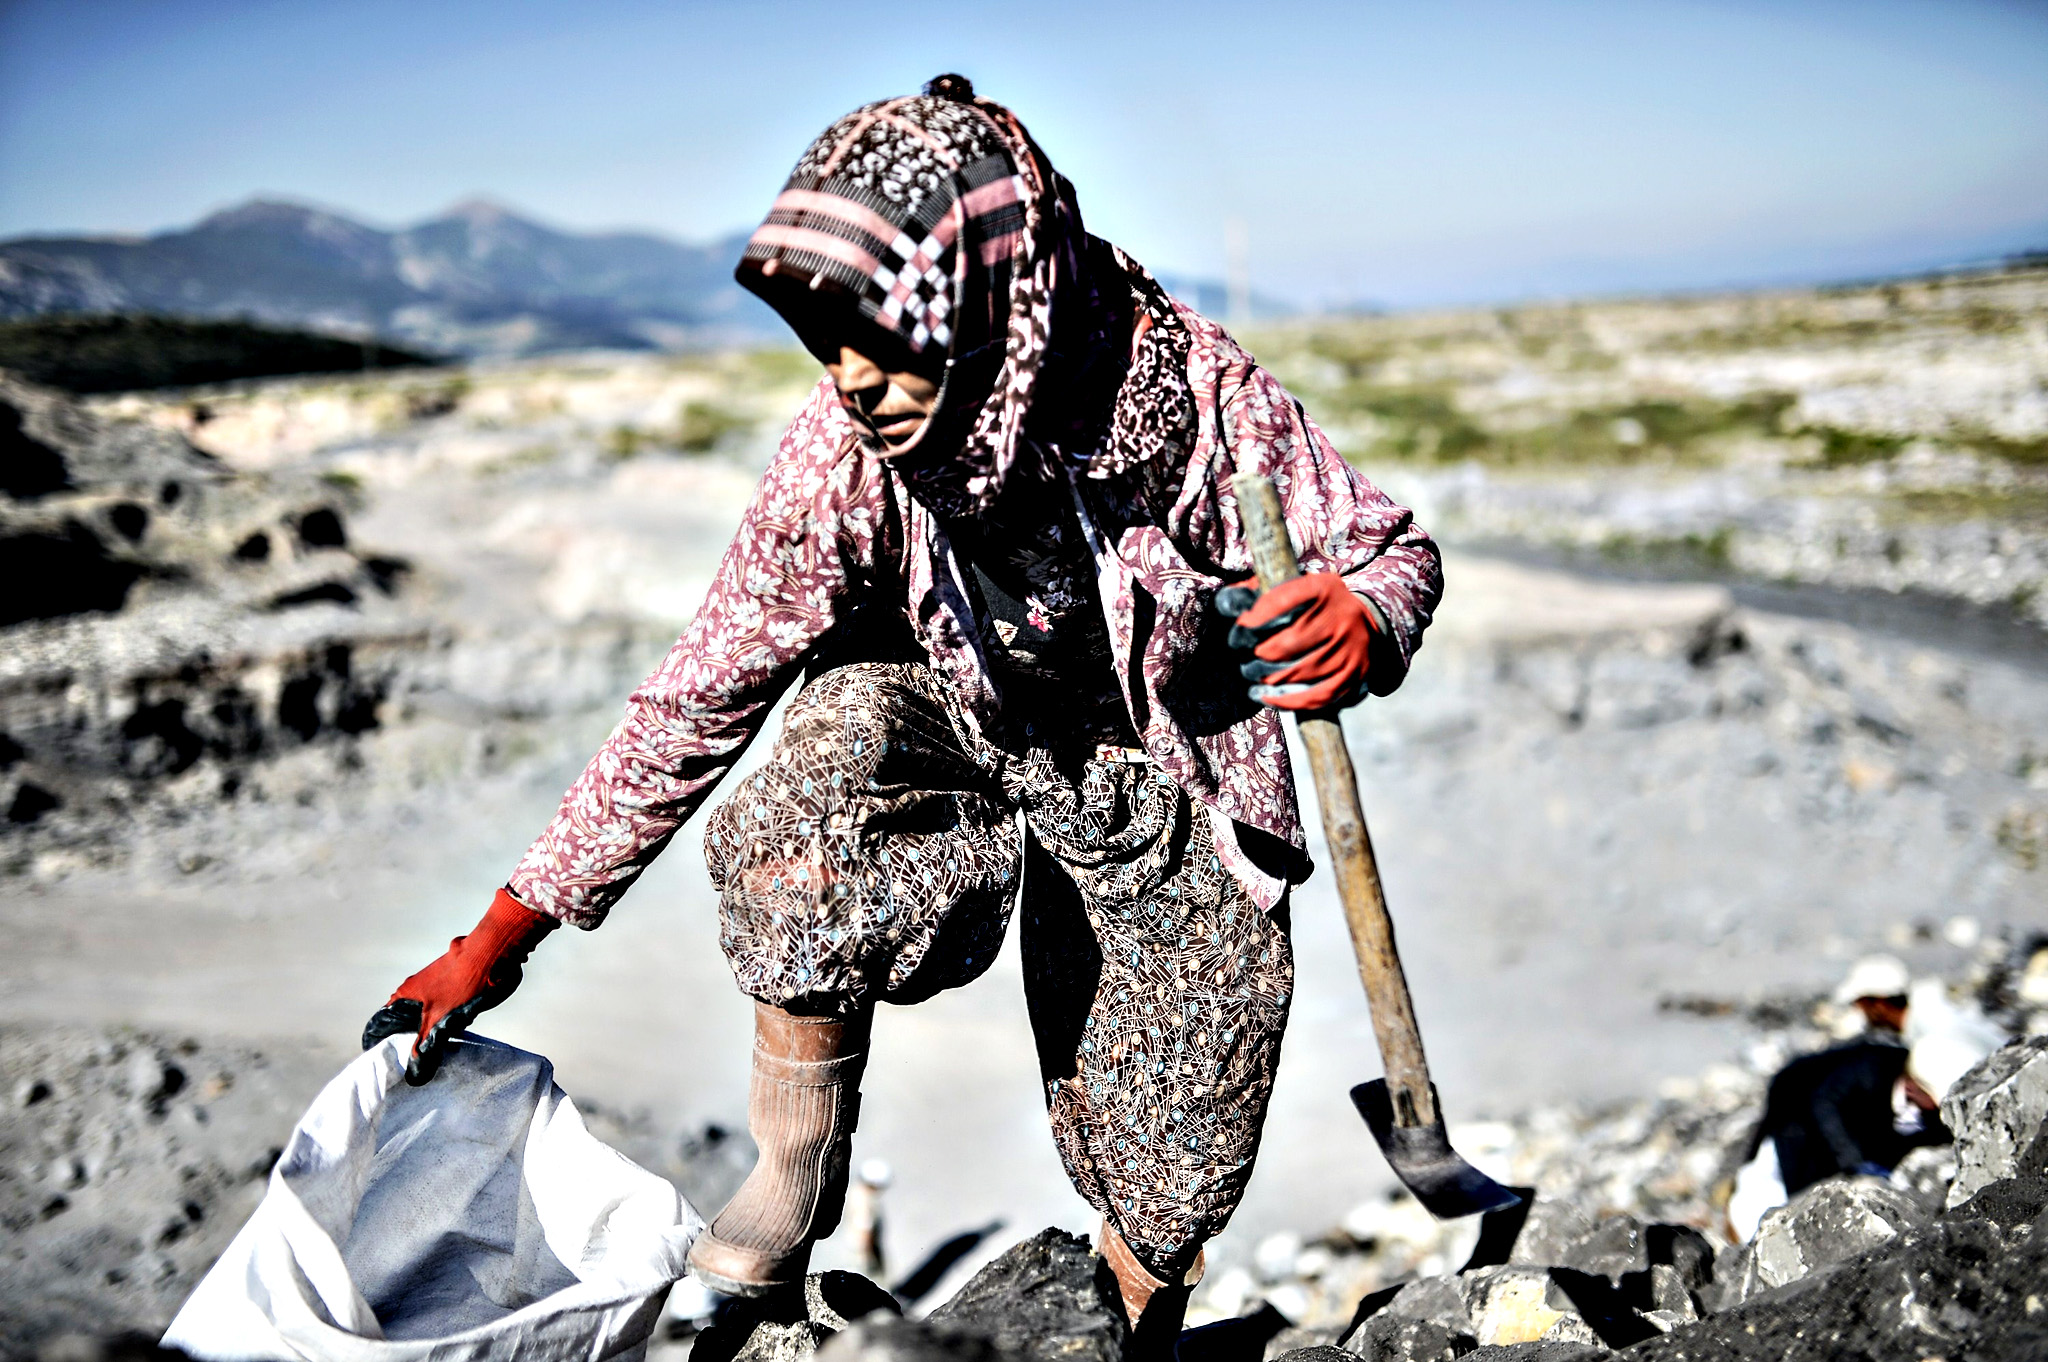 A villager from Yirca collects coal on Monday outside the Soma mine in Manisa. People gathered for the anniversary of the death of 301 workers after an explosion on May 13, 2014.